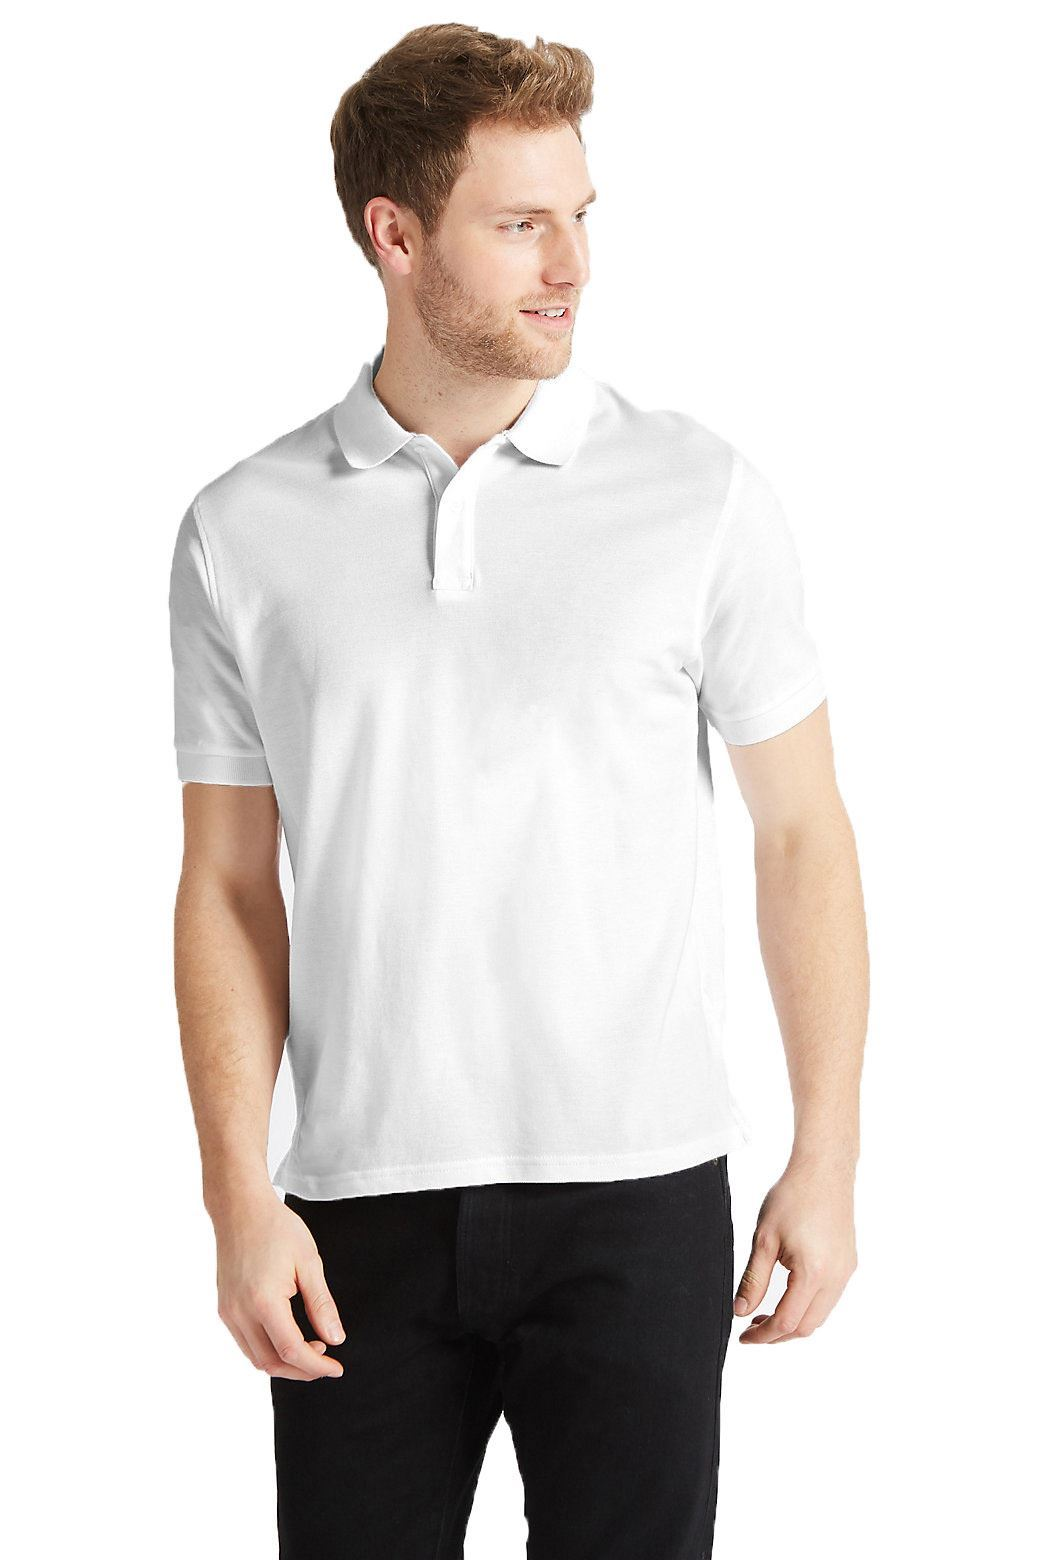 Marks-amp-Spencer-Mens-Cotton-Pique-Polo-Shirt-Extra-Large-Sizes thumbnail 24